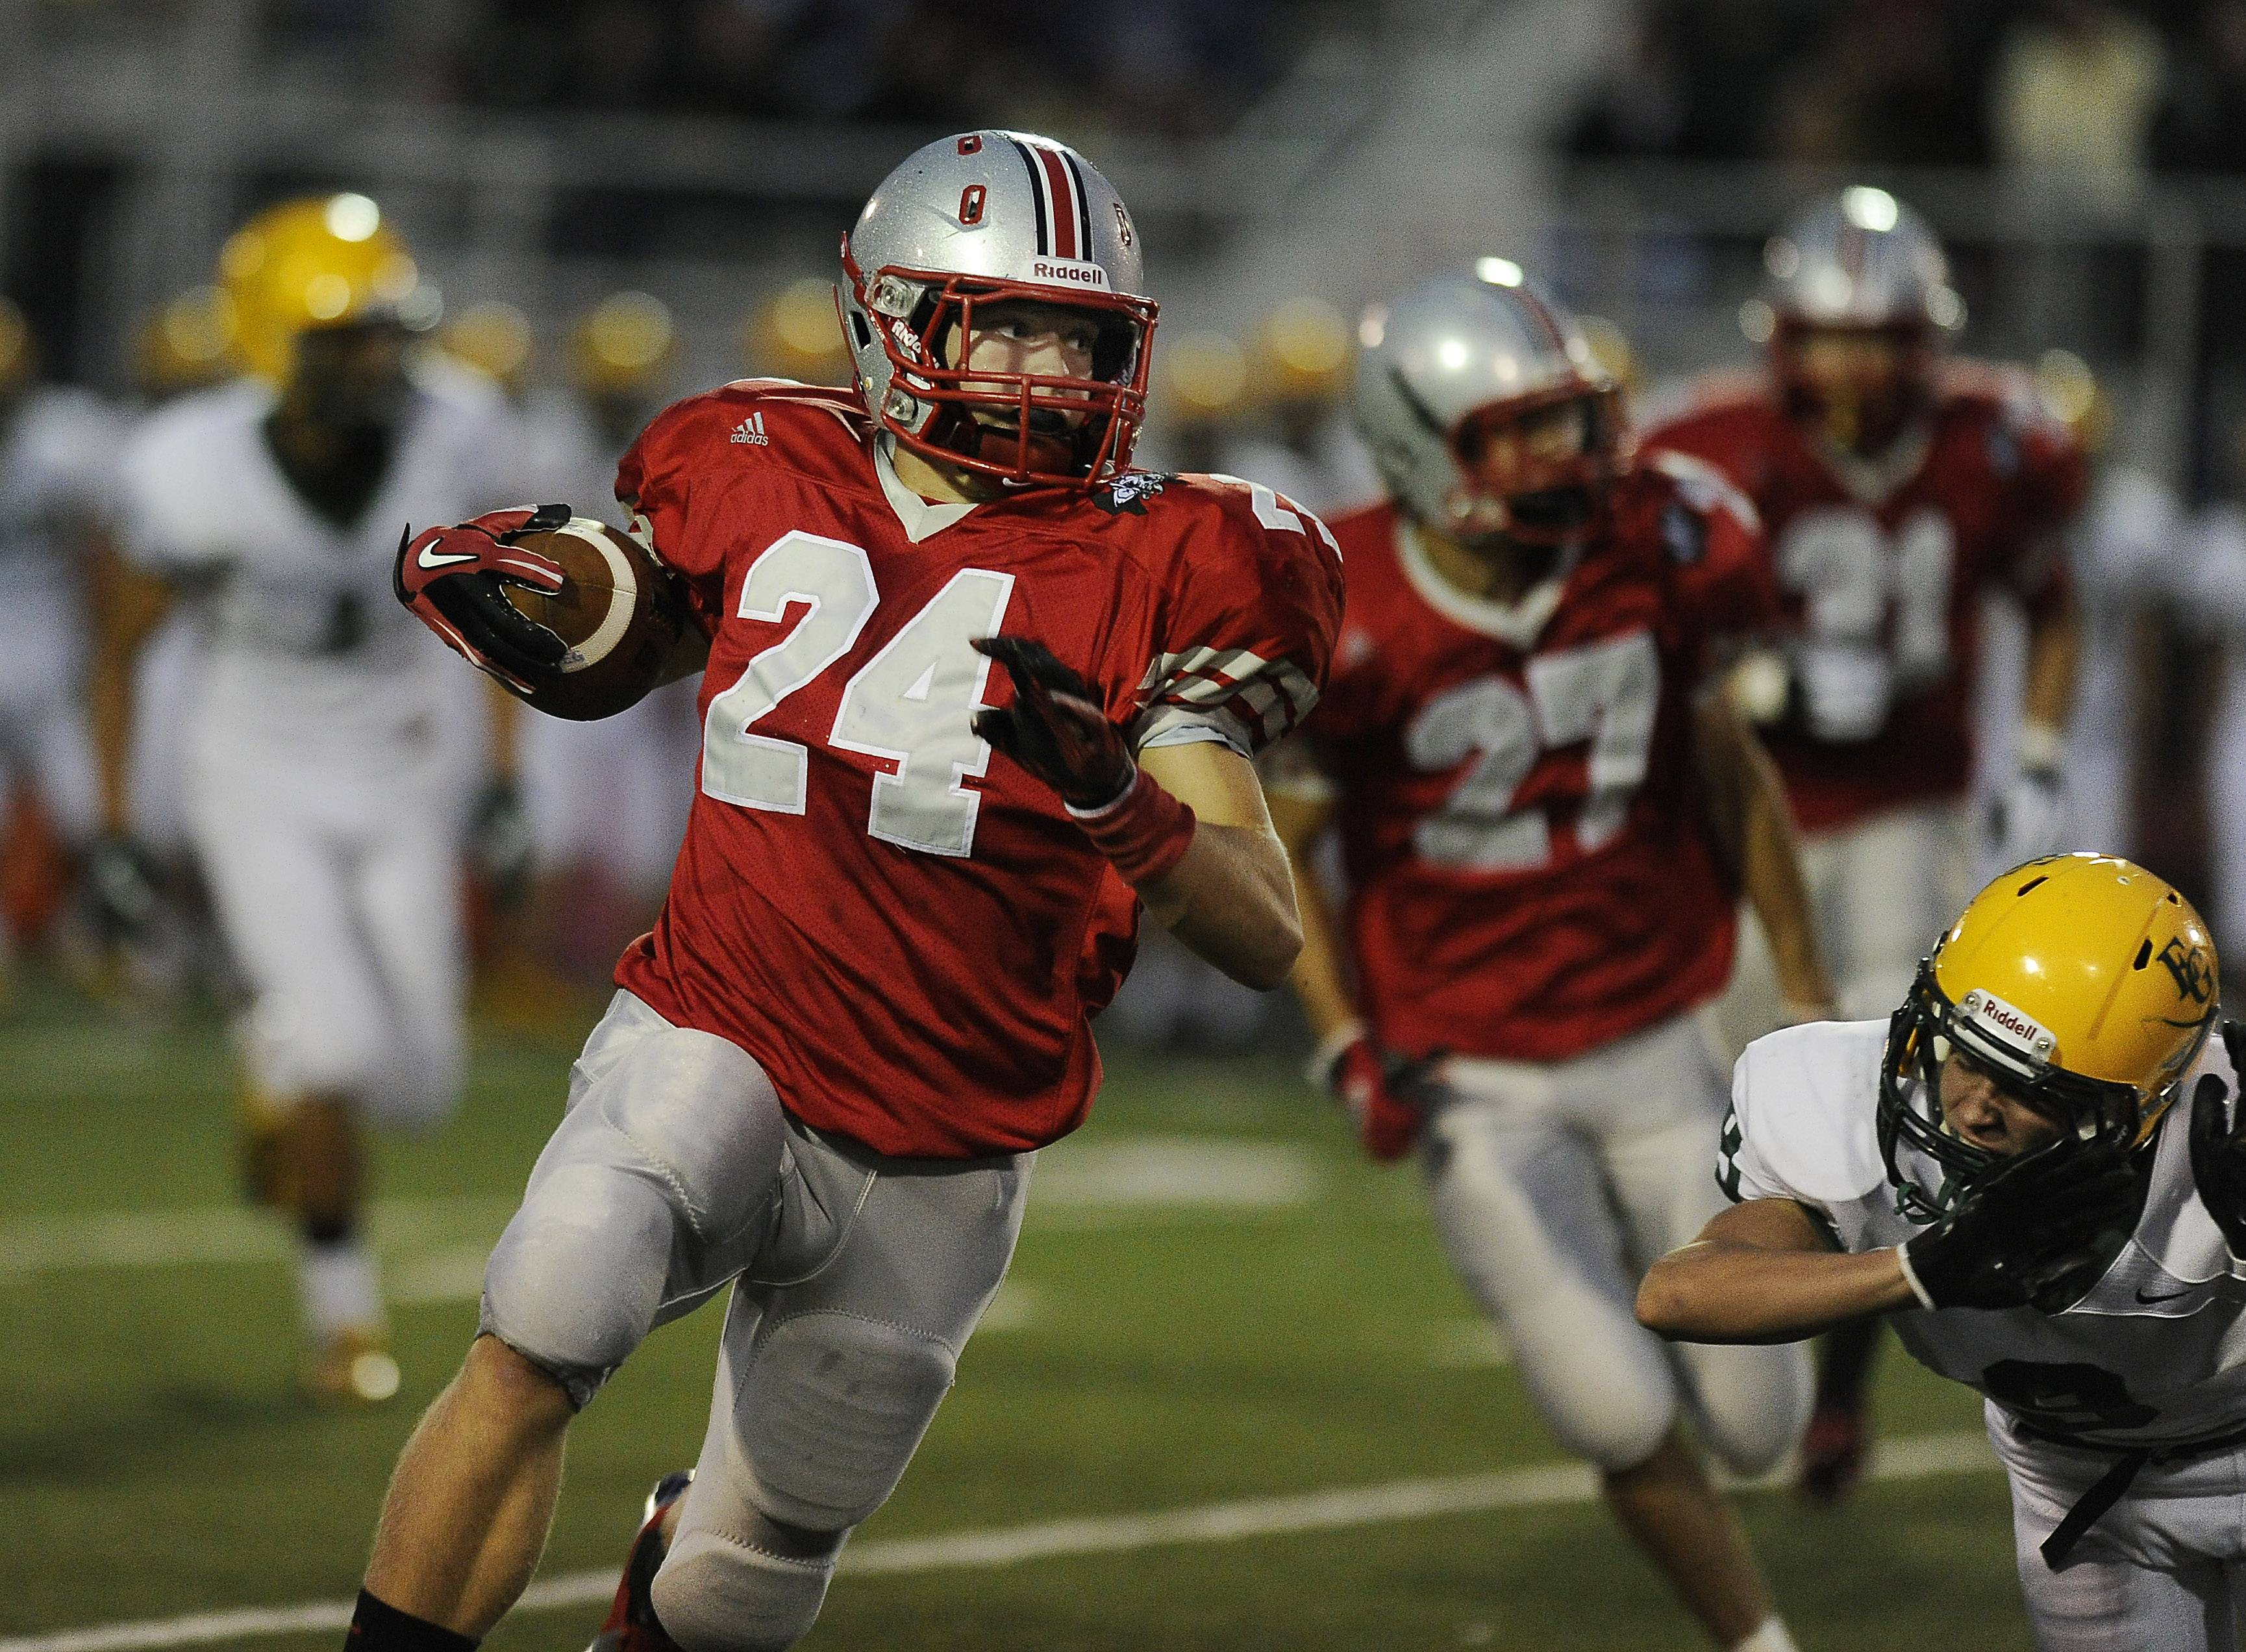 Palatine's Dan Riddle runs back an interception.